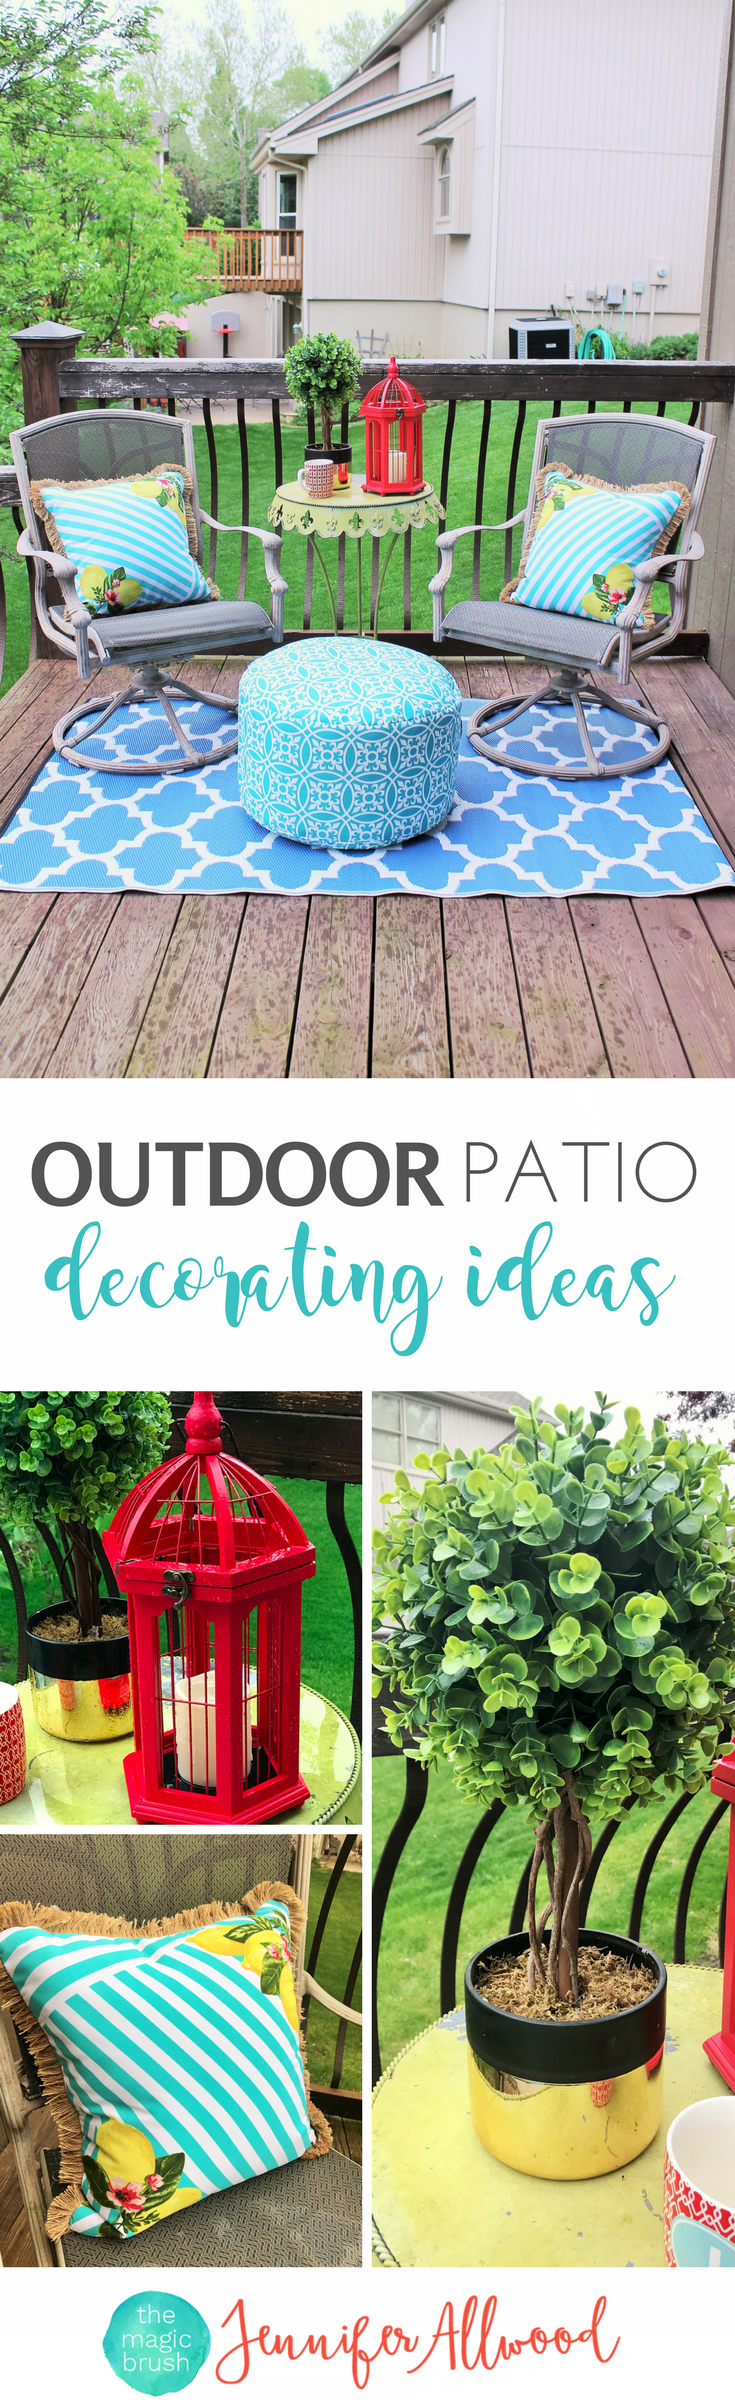 Outdoor Patio Decor by Jennifer Allwood | Patio Decorating Ideas + Outdoor Pouf + Blue + Yellow Decor + Porch Decor + Red Lantern + Topiary Decor